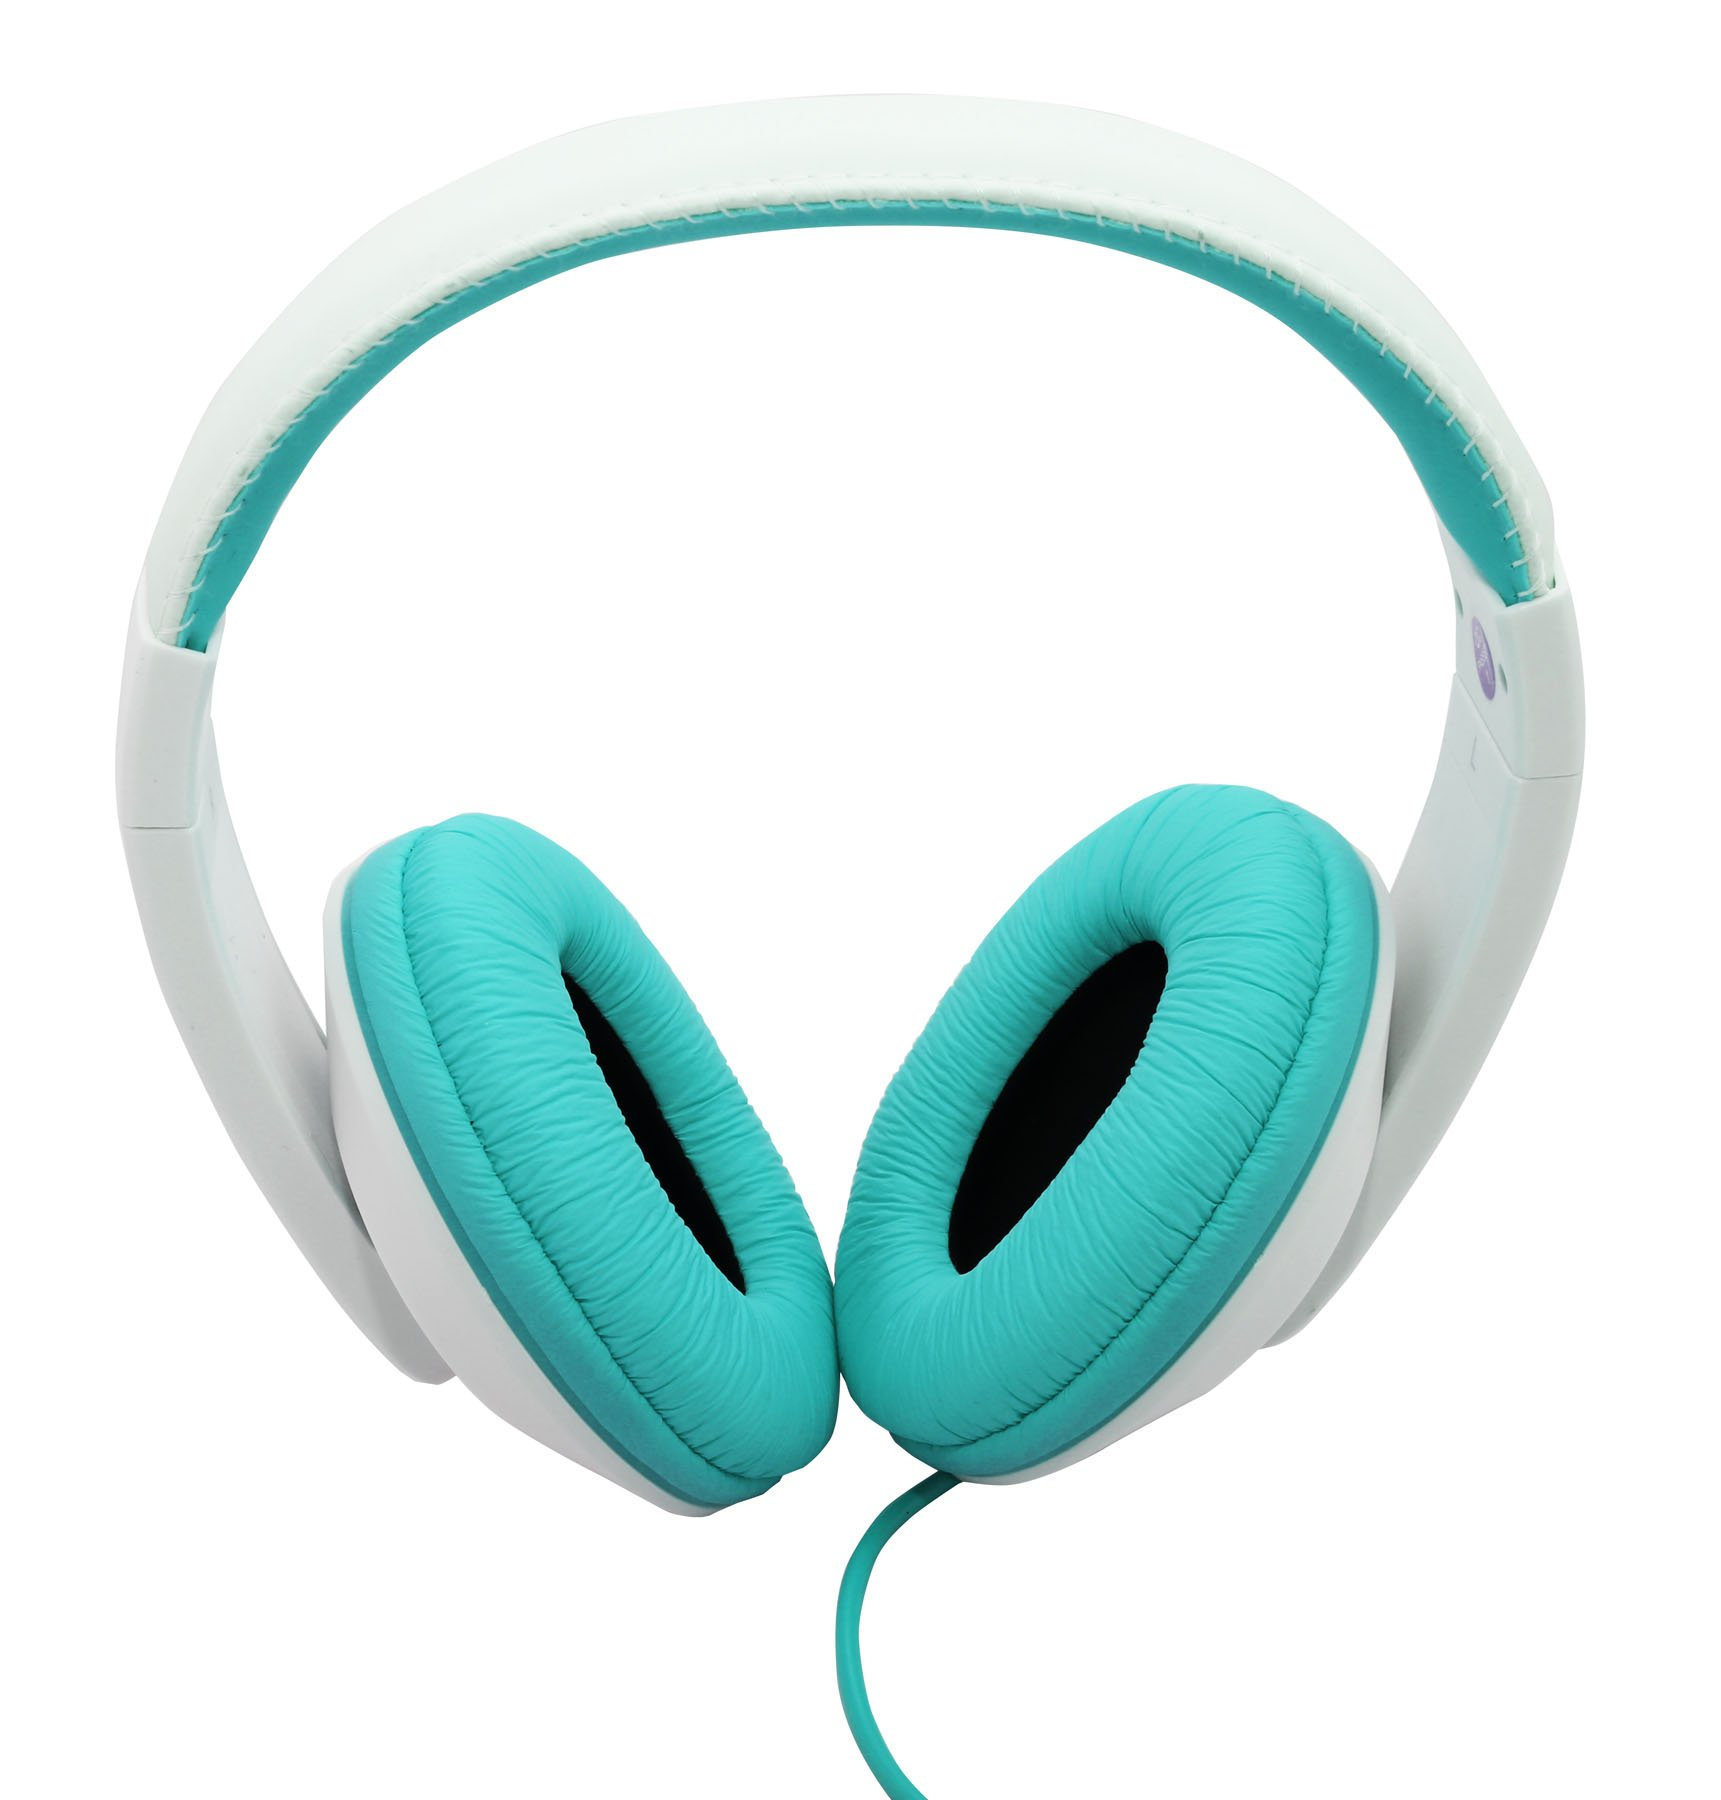 Connectland Stereo Wired Headphone & Microphone Lightweight 40mm Speaker Music Gaming Stylish Teal CL-AUD63035 by Connectland (Image #2)